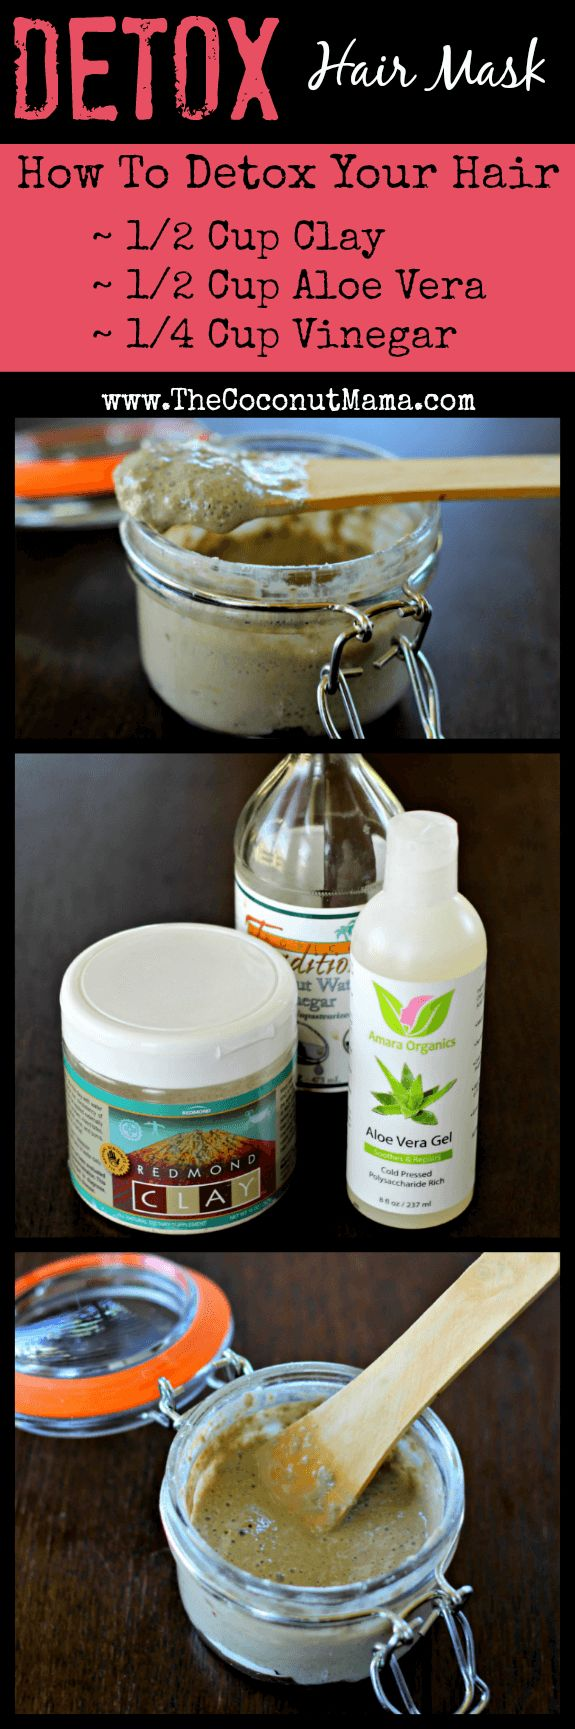 Detox Hair Mask: How To Detox Your Hair & Why You Want Too!